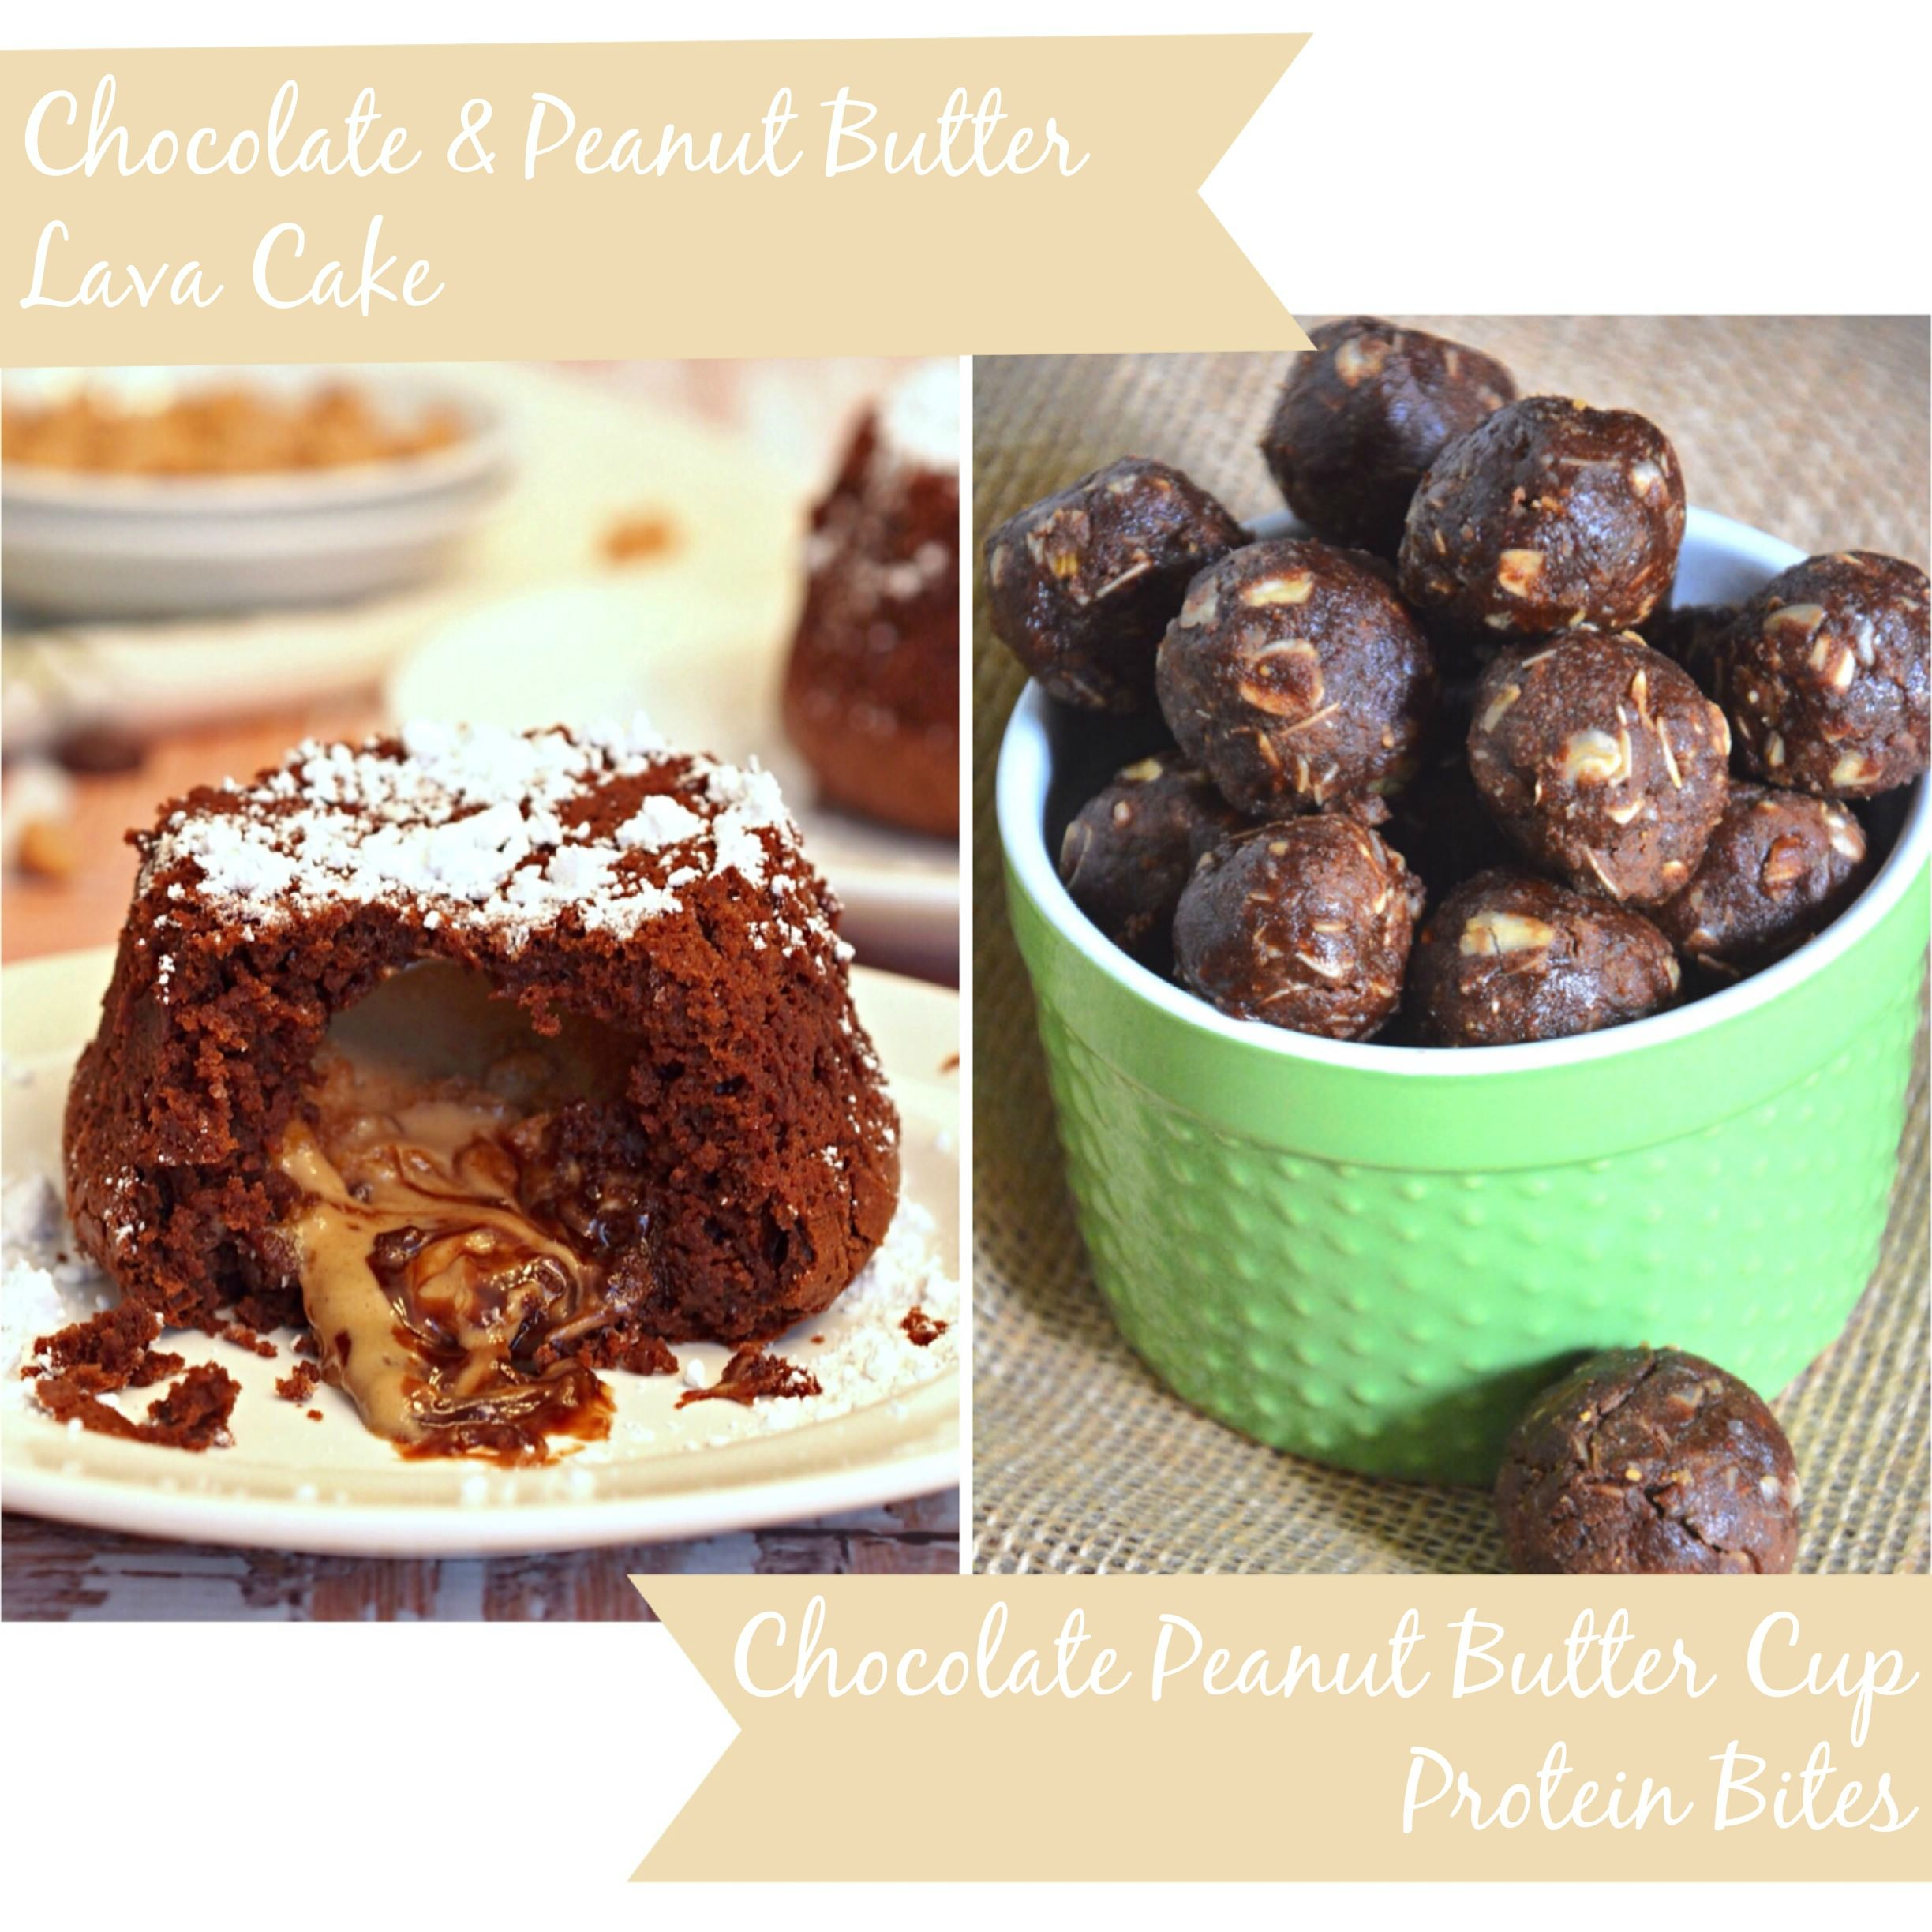 Chocolate Peanut Butter Cup Protein Bites & Chocolate Peanut Butter Lava Cakes